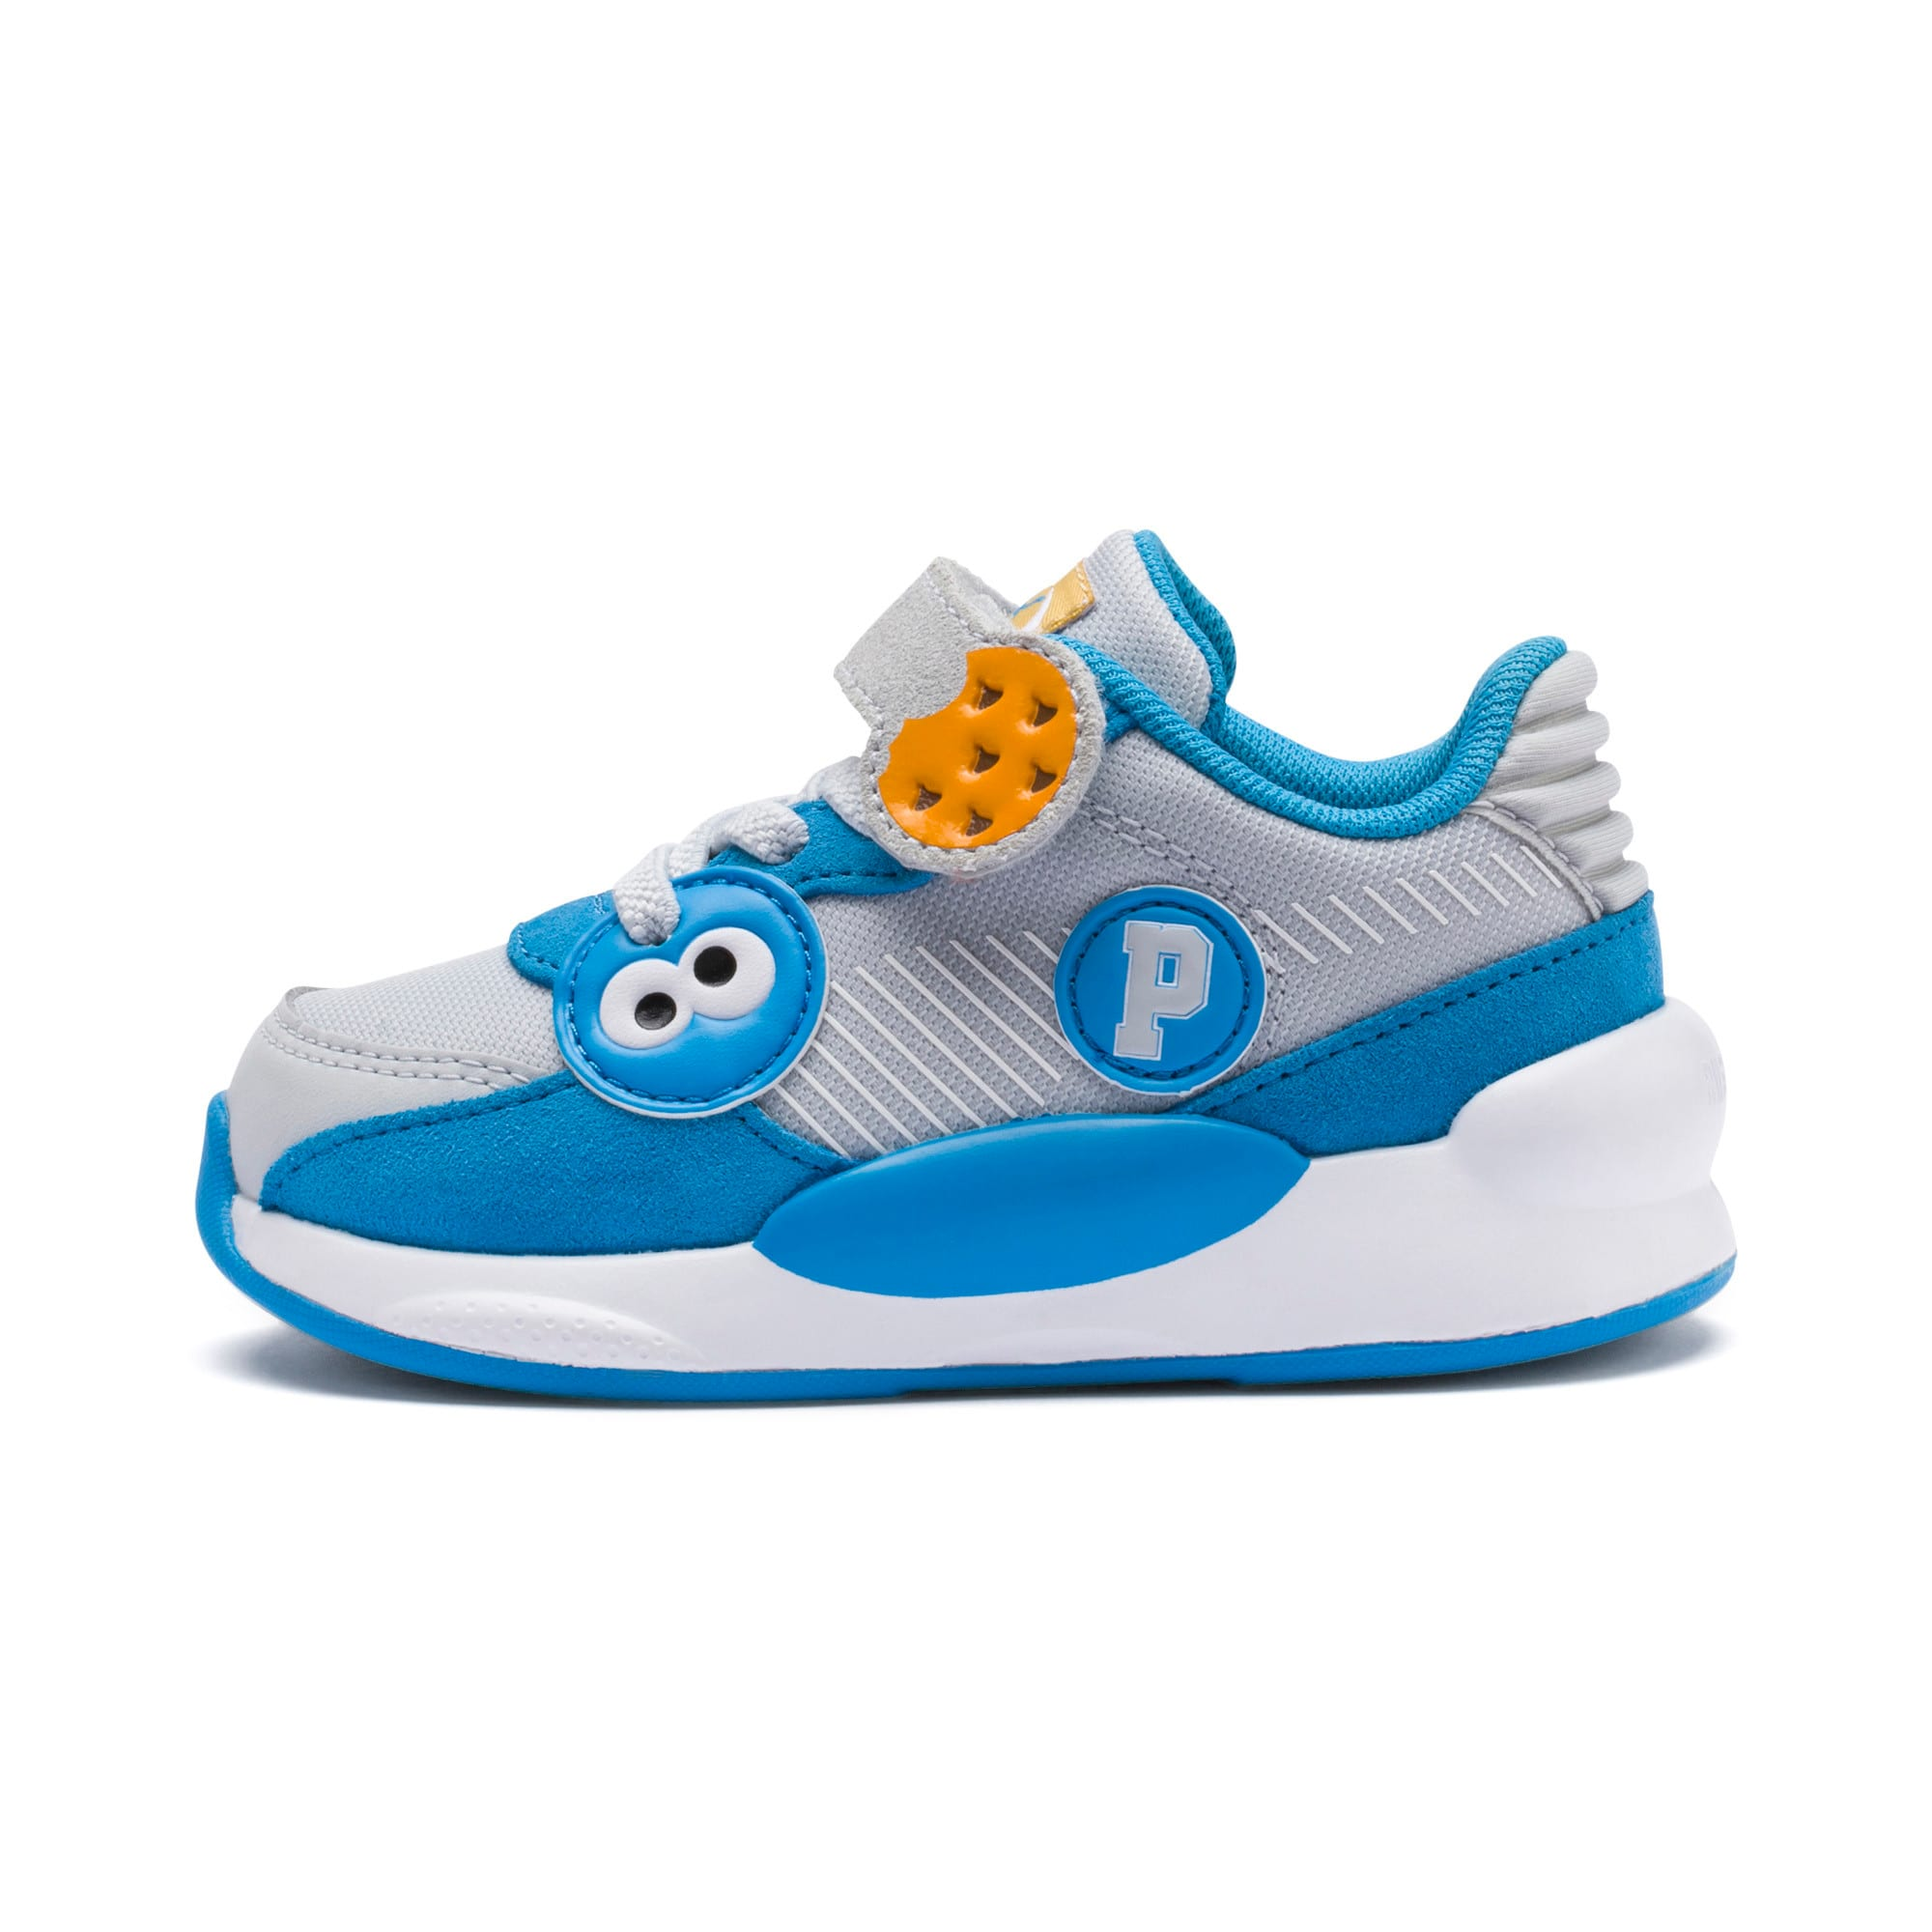 Sesame Street 50 RS 9.8 Babies' Trainers, Grey Dawn-Bleu Azur, large